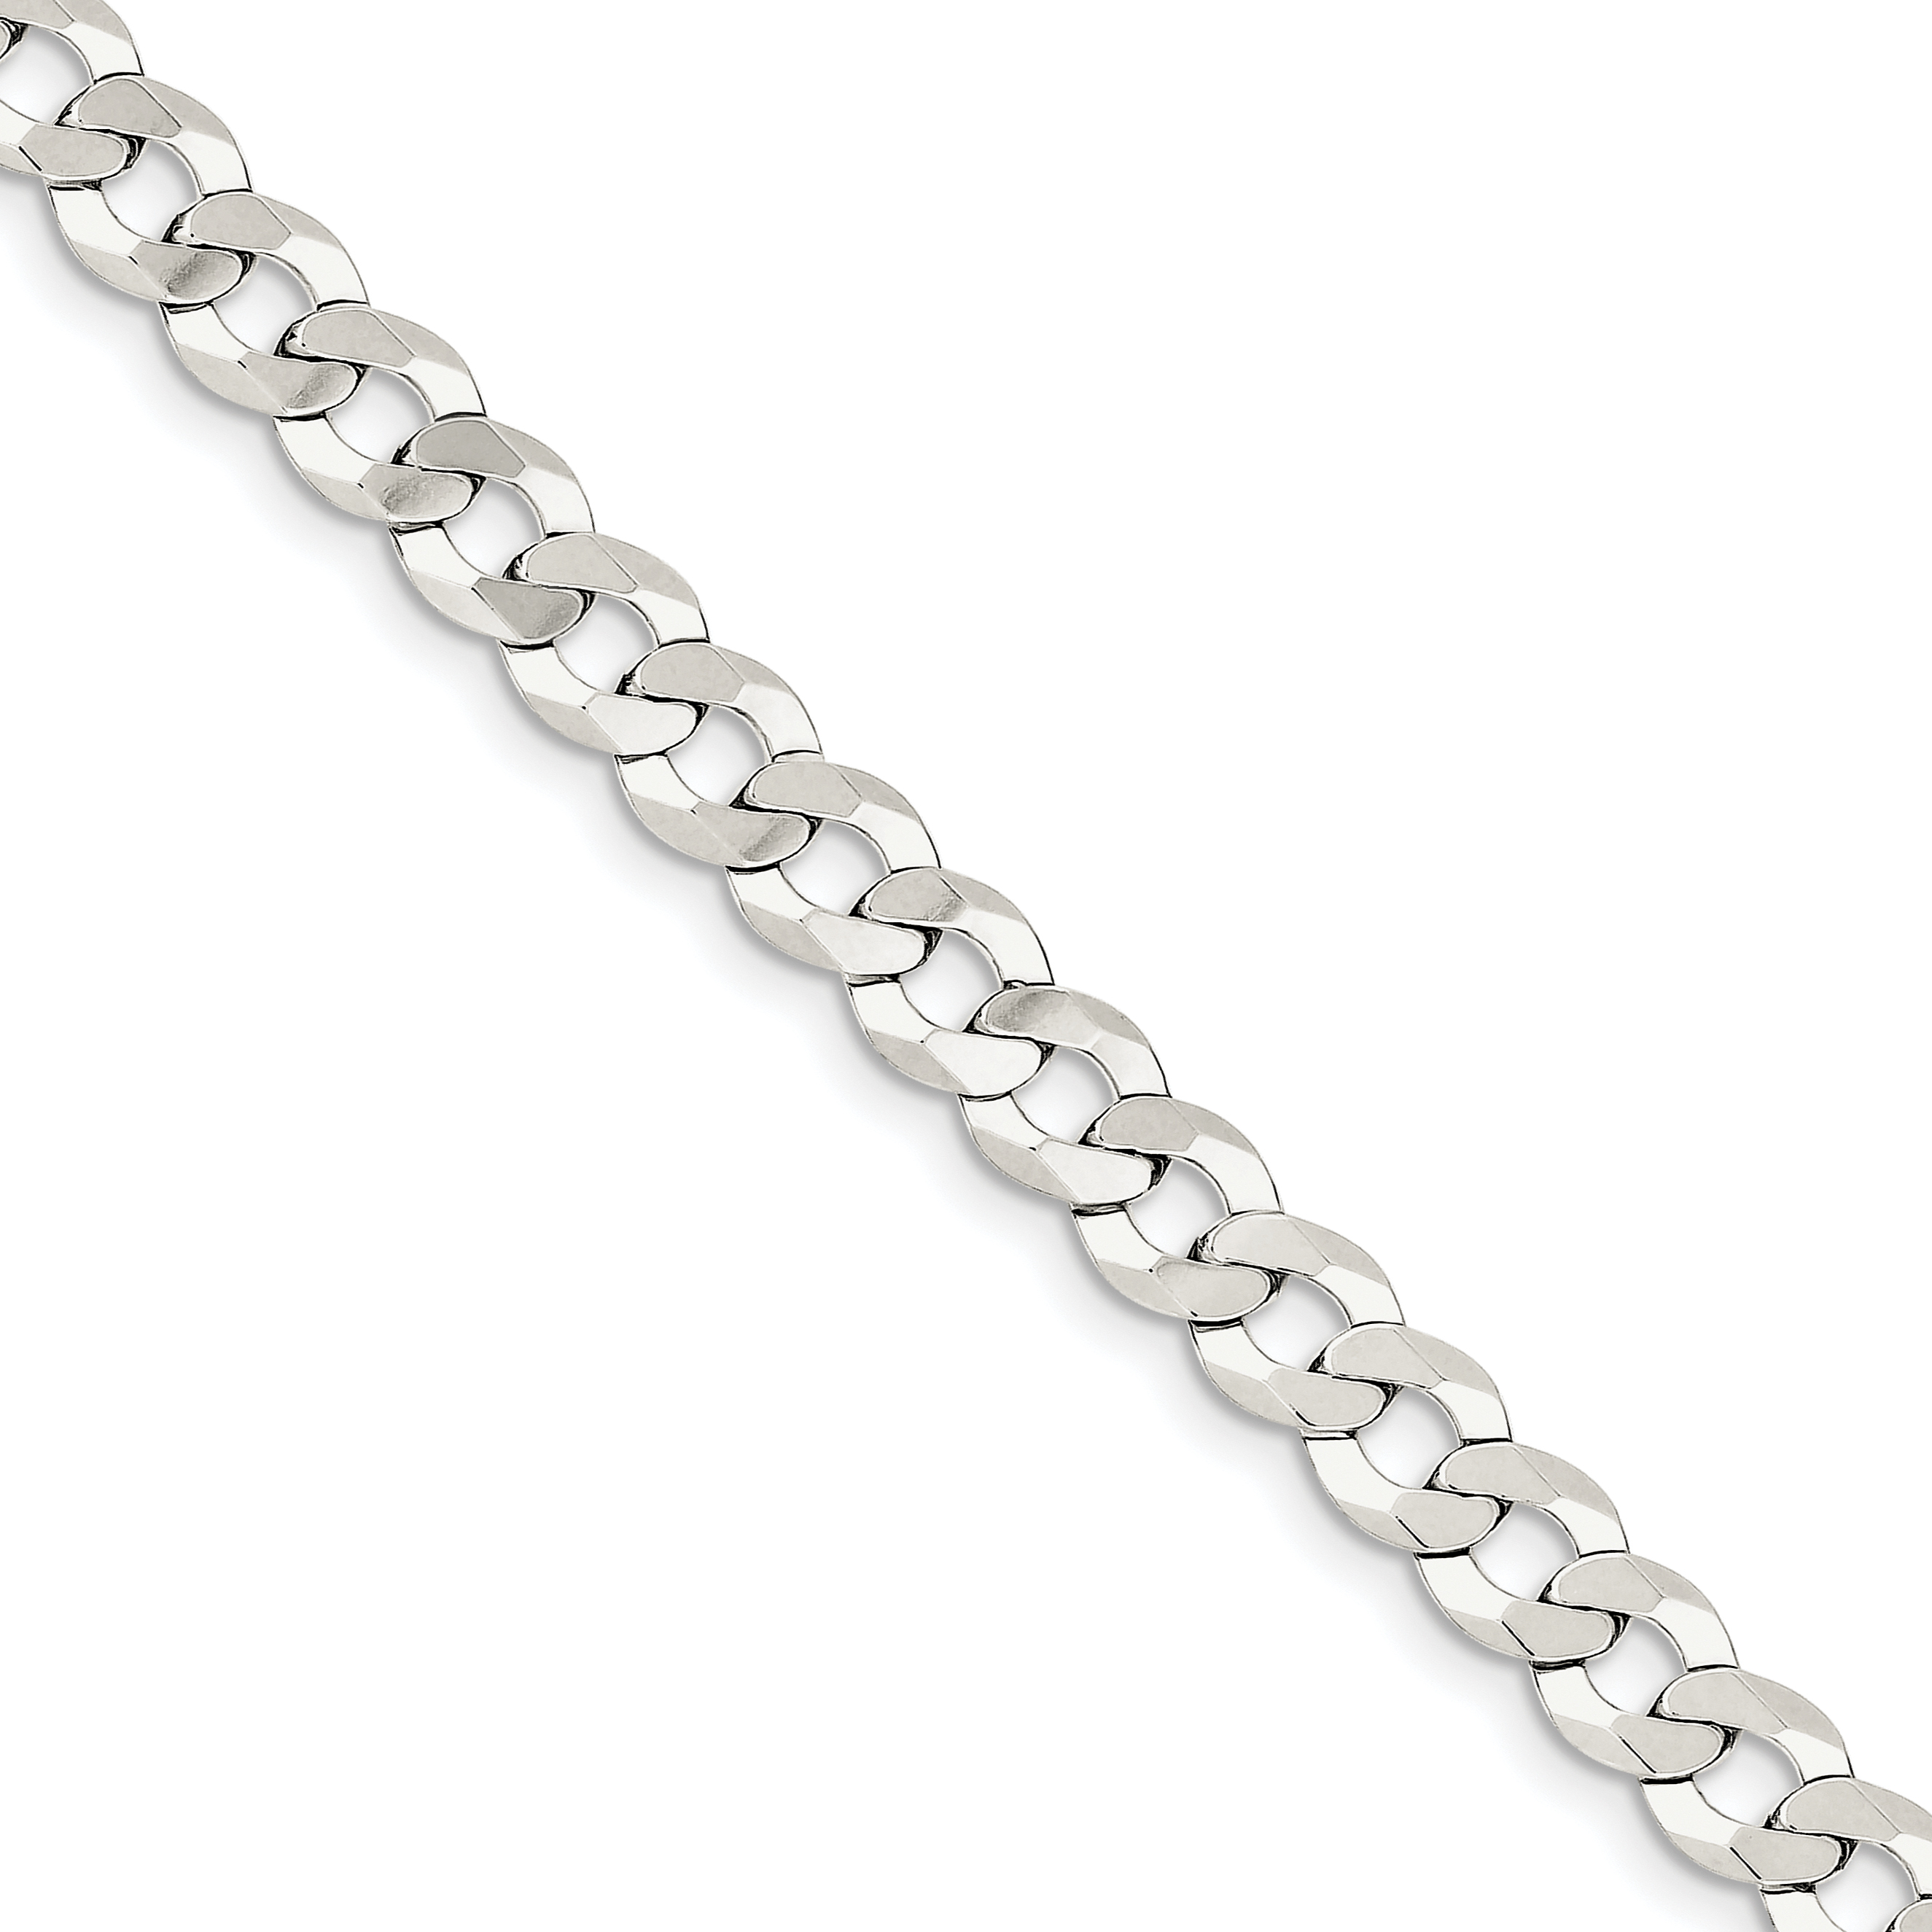 Sterling Silver 8mm Close Link Flat Curb Chain | Weight: 11.57 grams, Length: 8mm, Width: 8mm